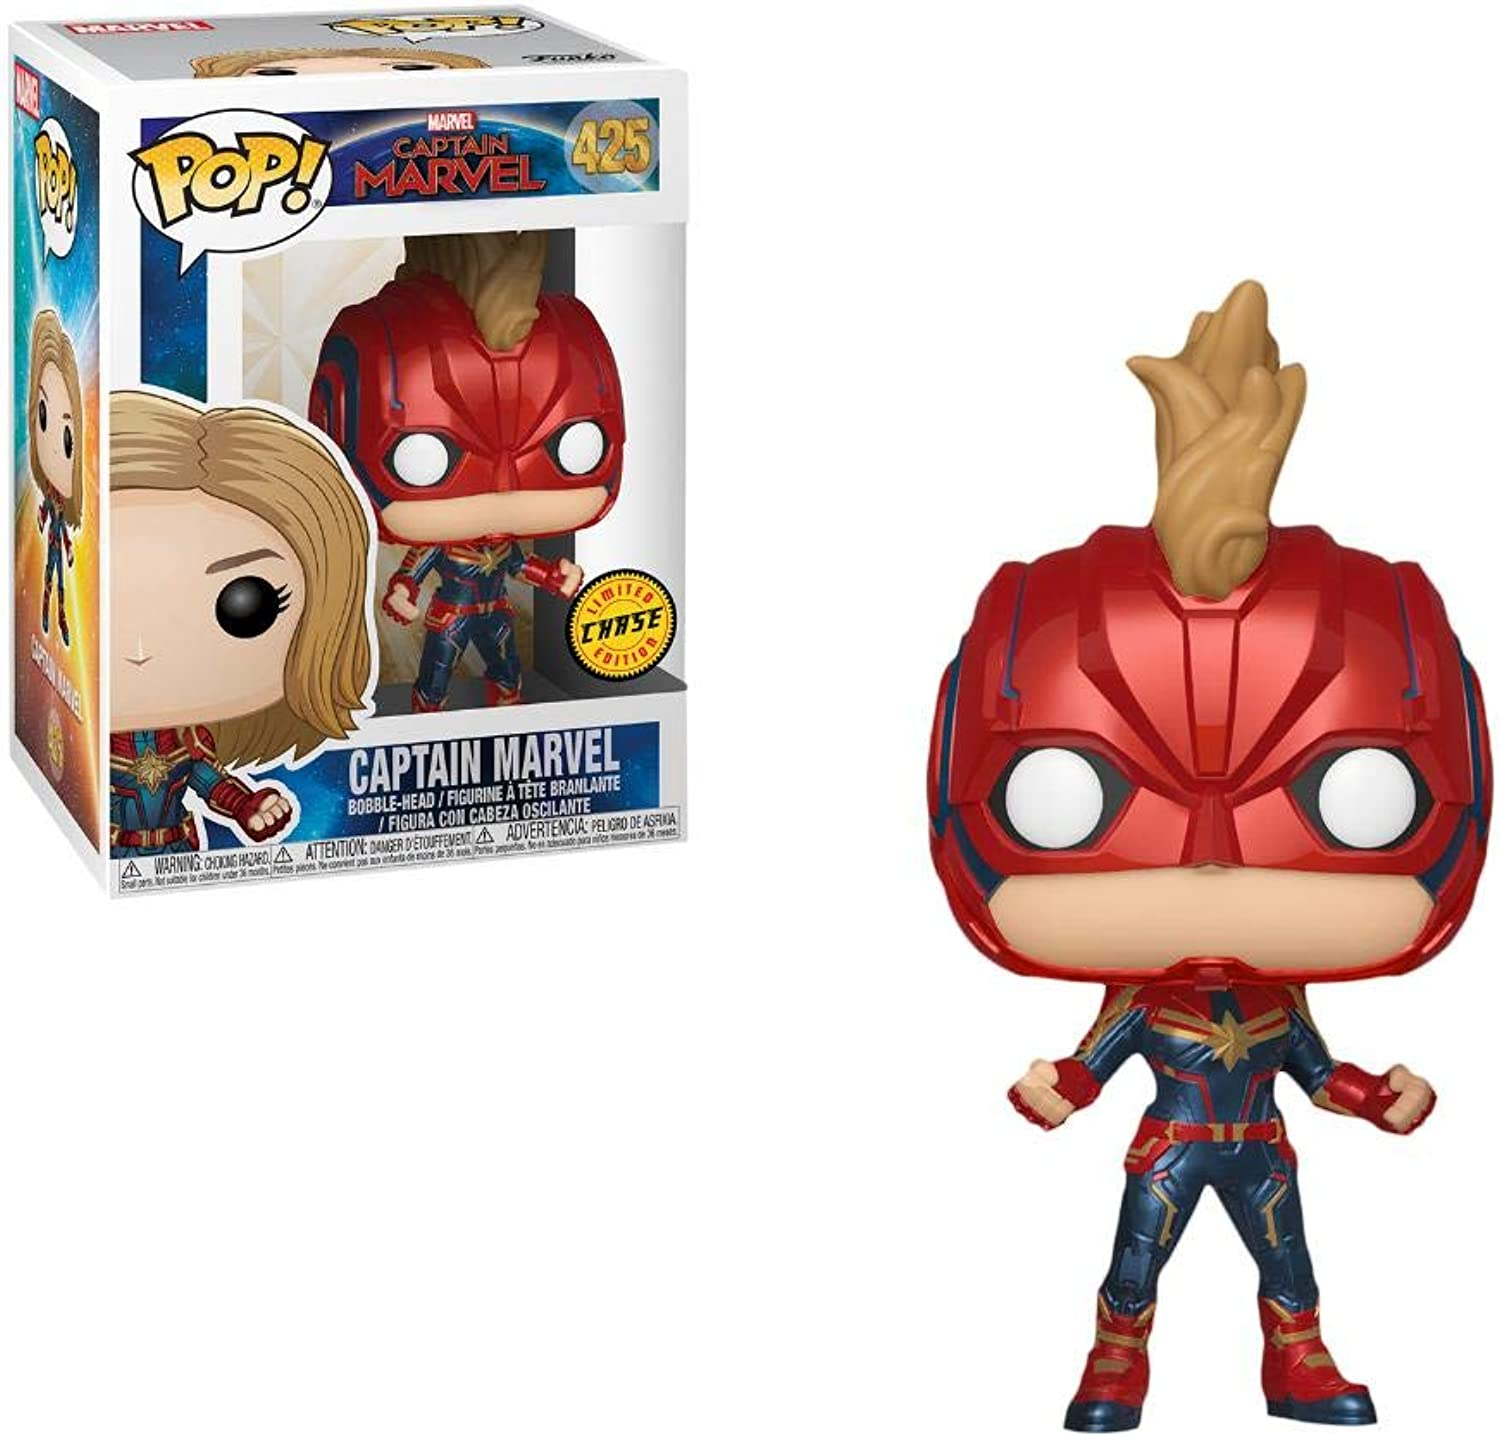 costo real Funko Pop Capitan Marvel 425 Chase Cocheol Danvers Miss Figura Figura Figura 9 cm Cinema Film  2  mejor servicio